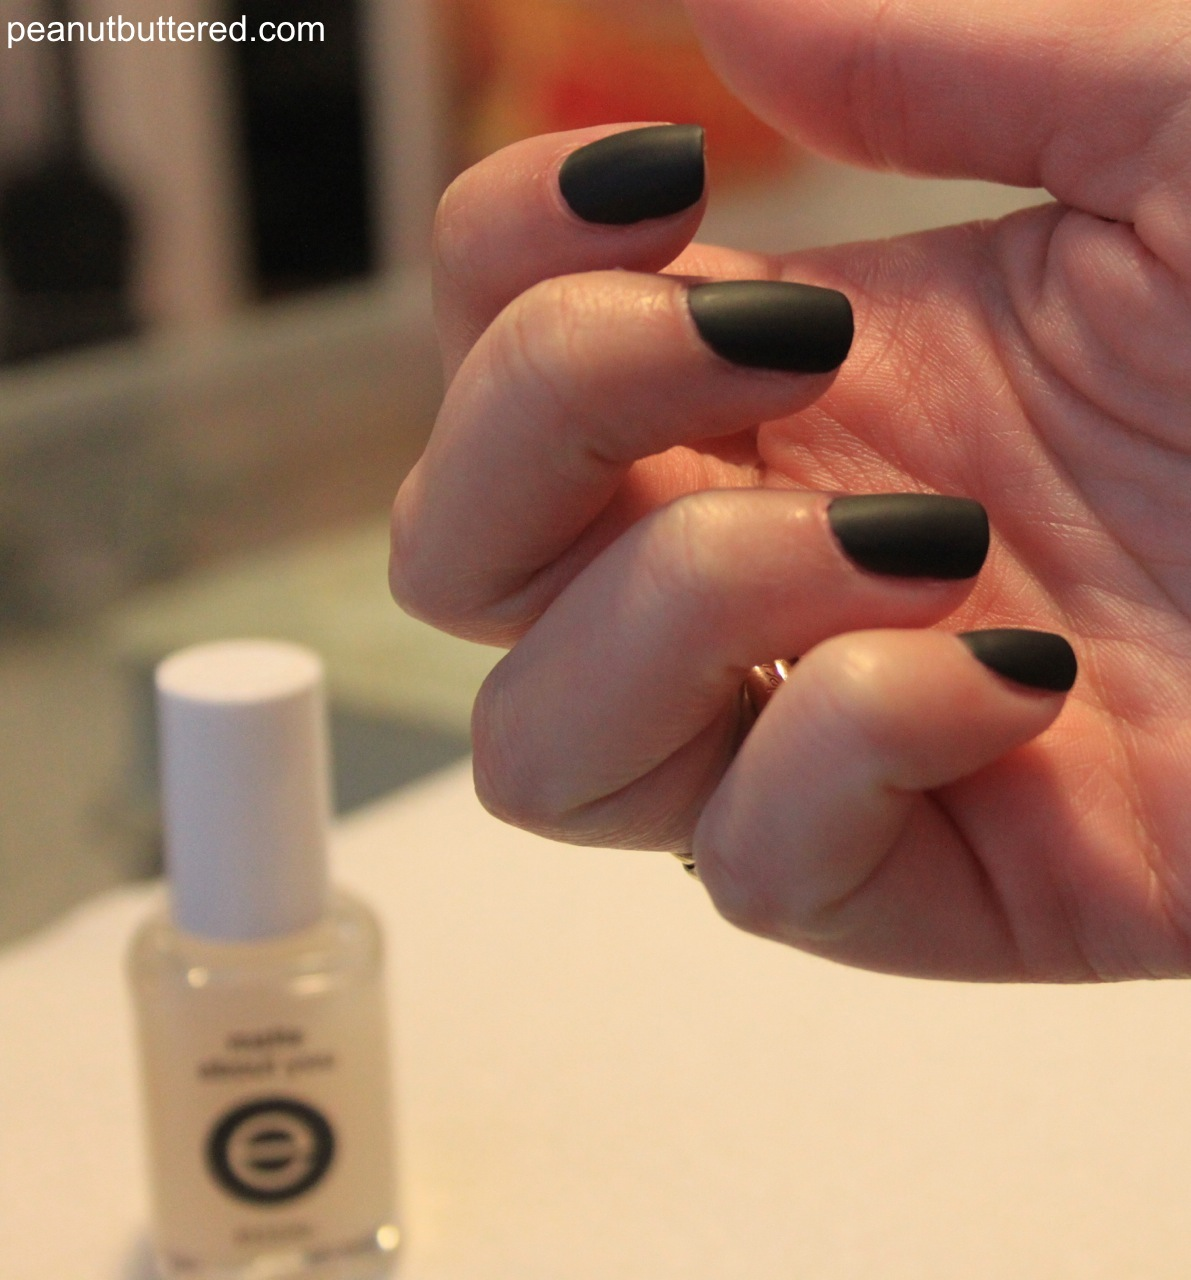 matte french nails, peanut buttered, halloween manicure ideas